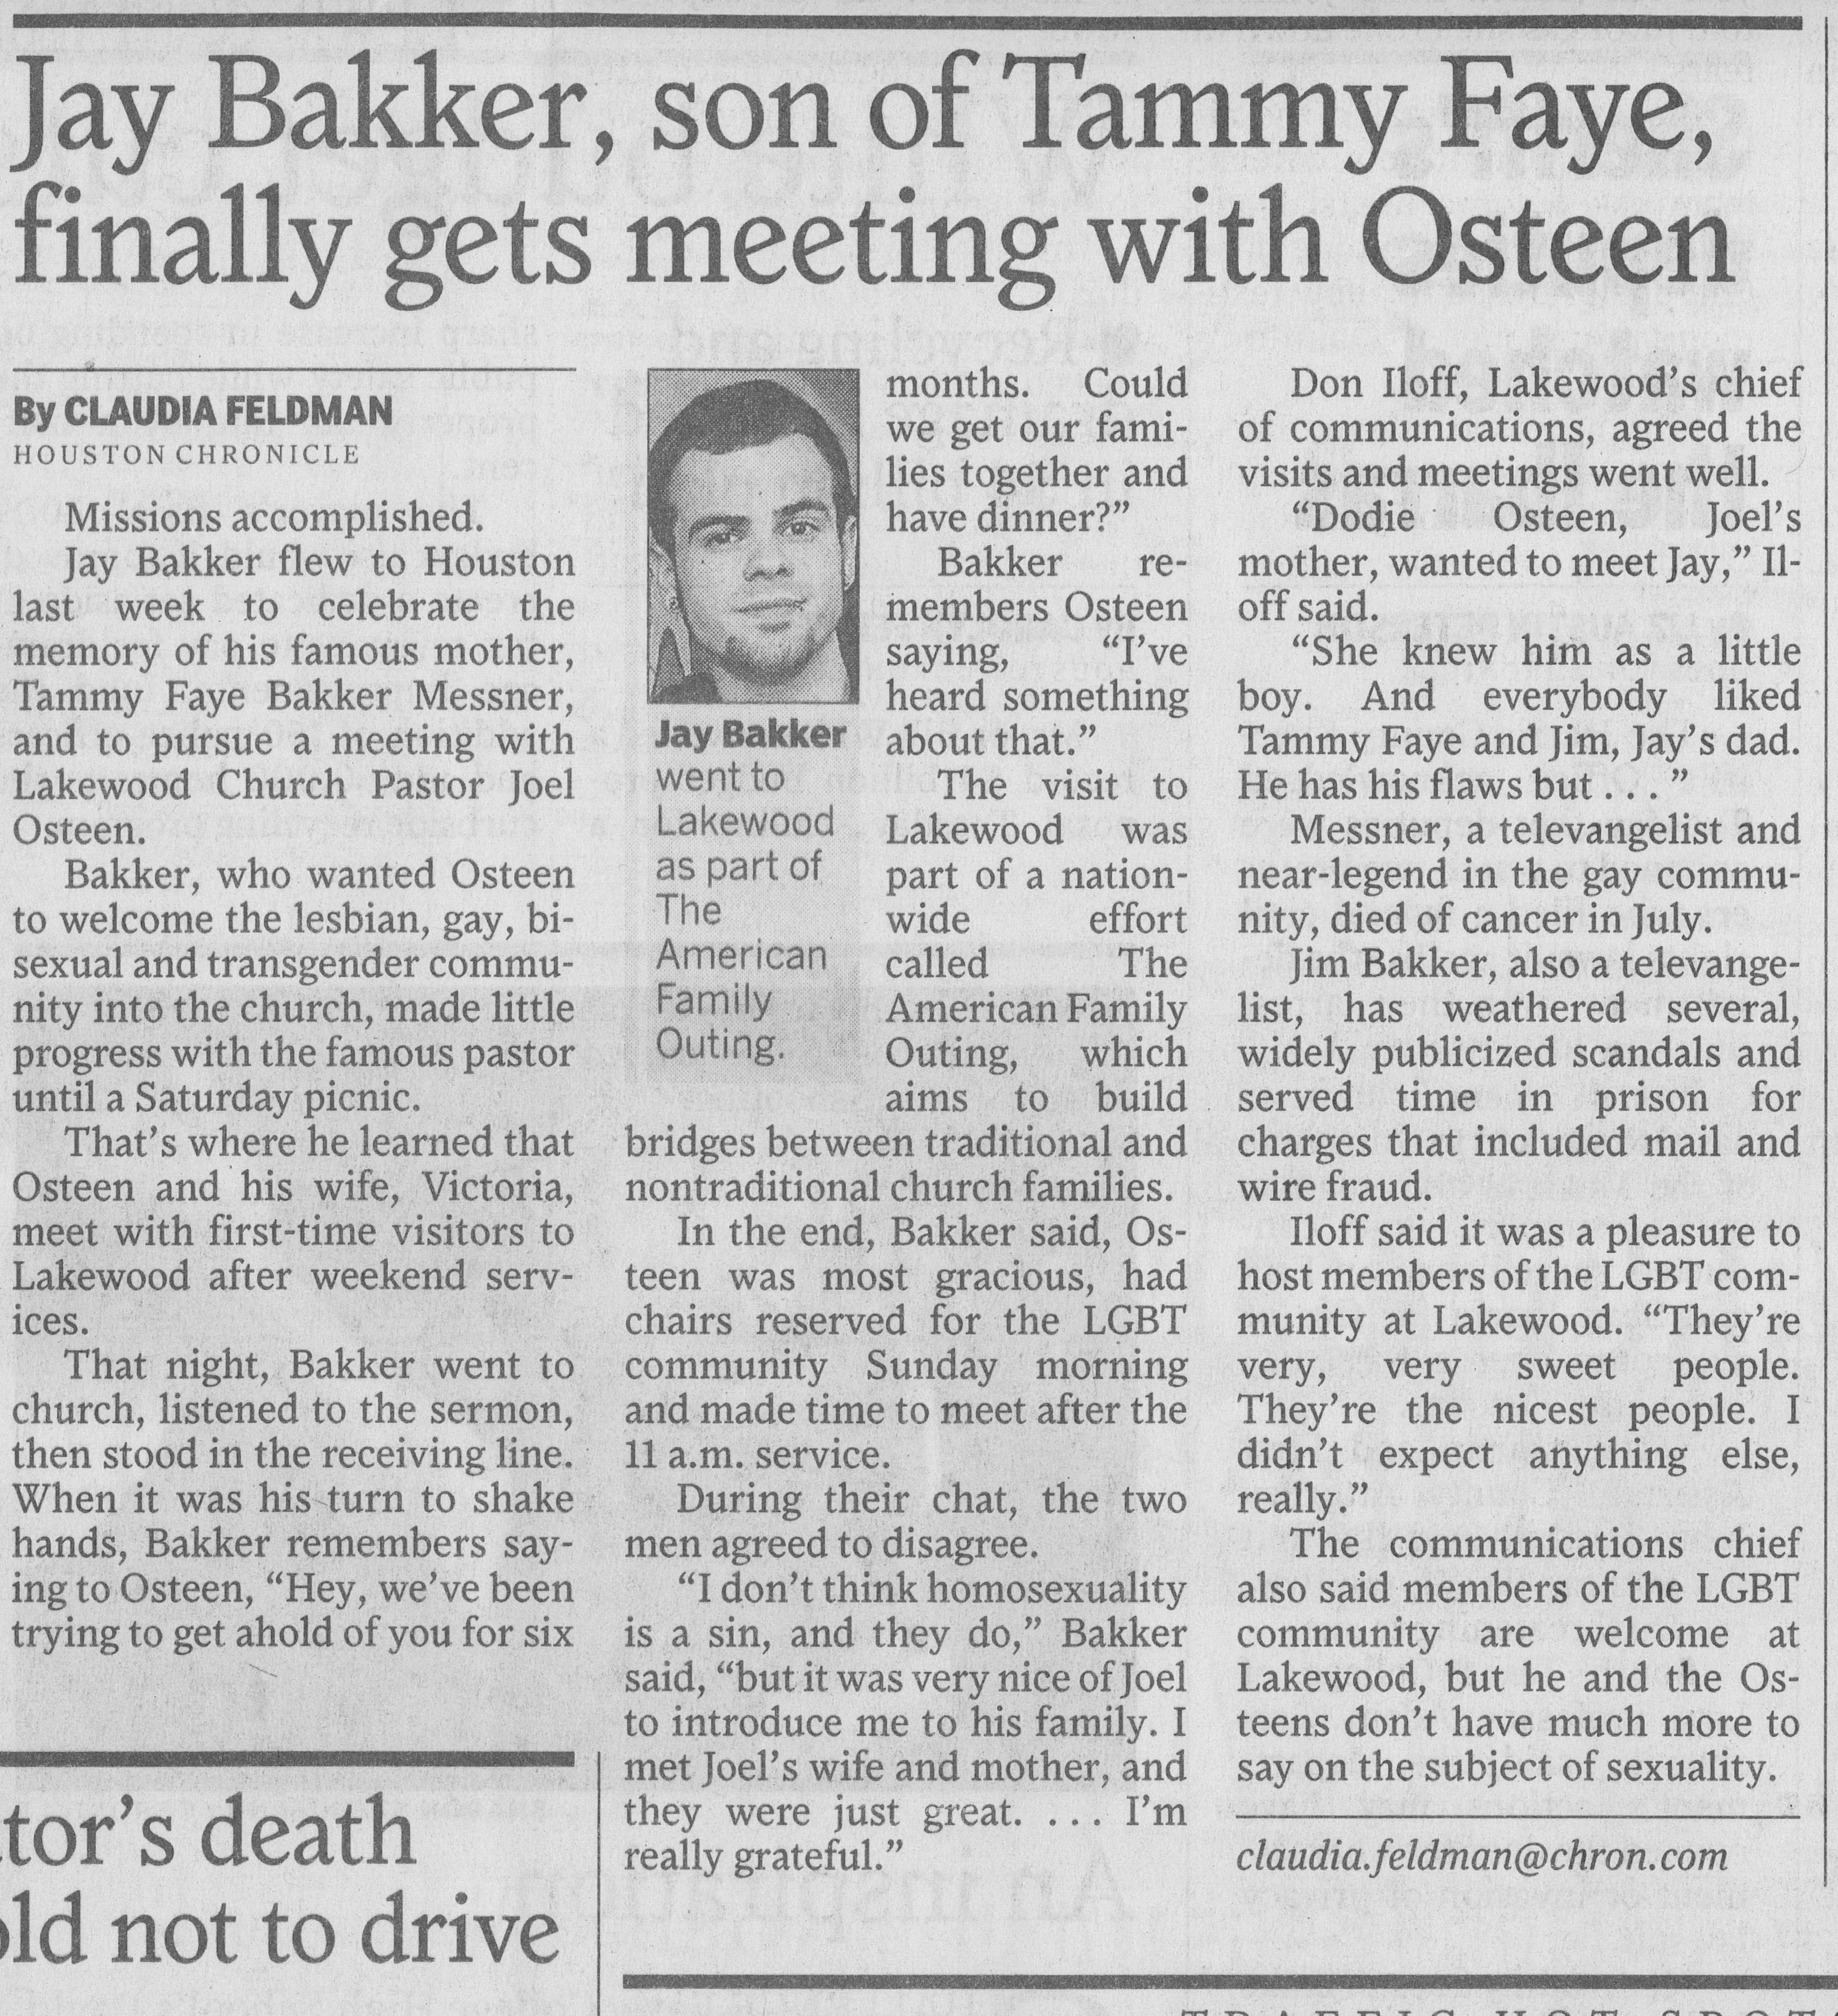 Jay Bakker, son of Tammy Faye, finally gets meeting with Osteen